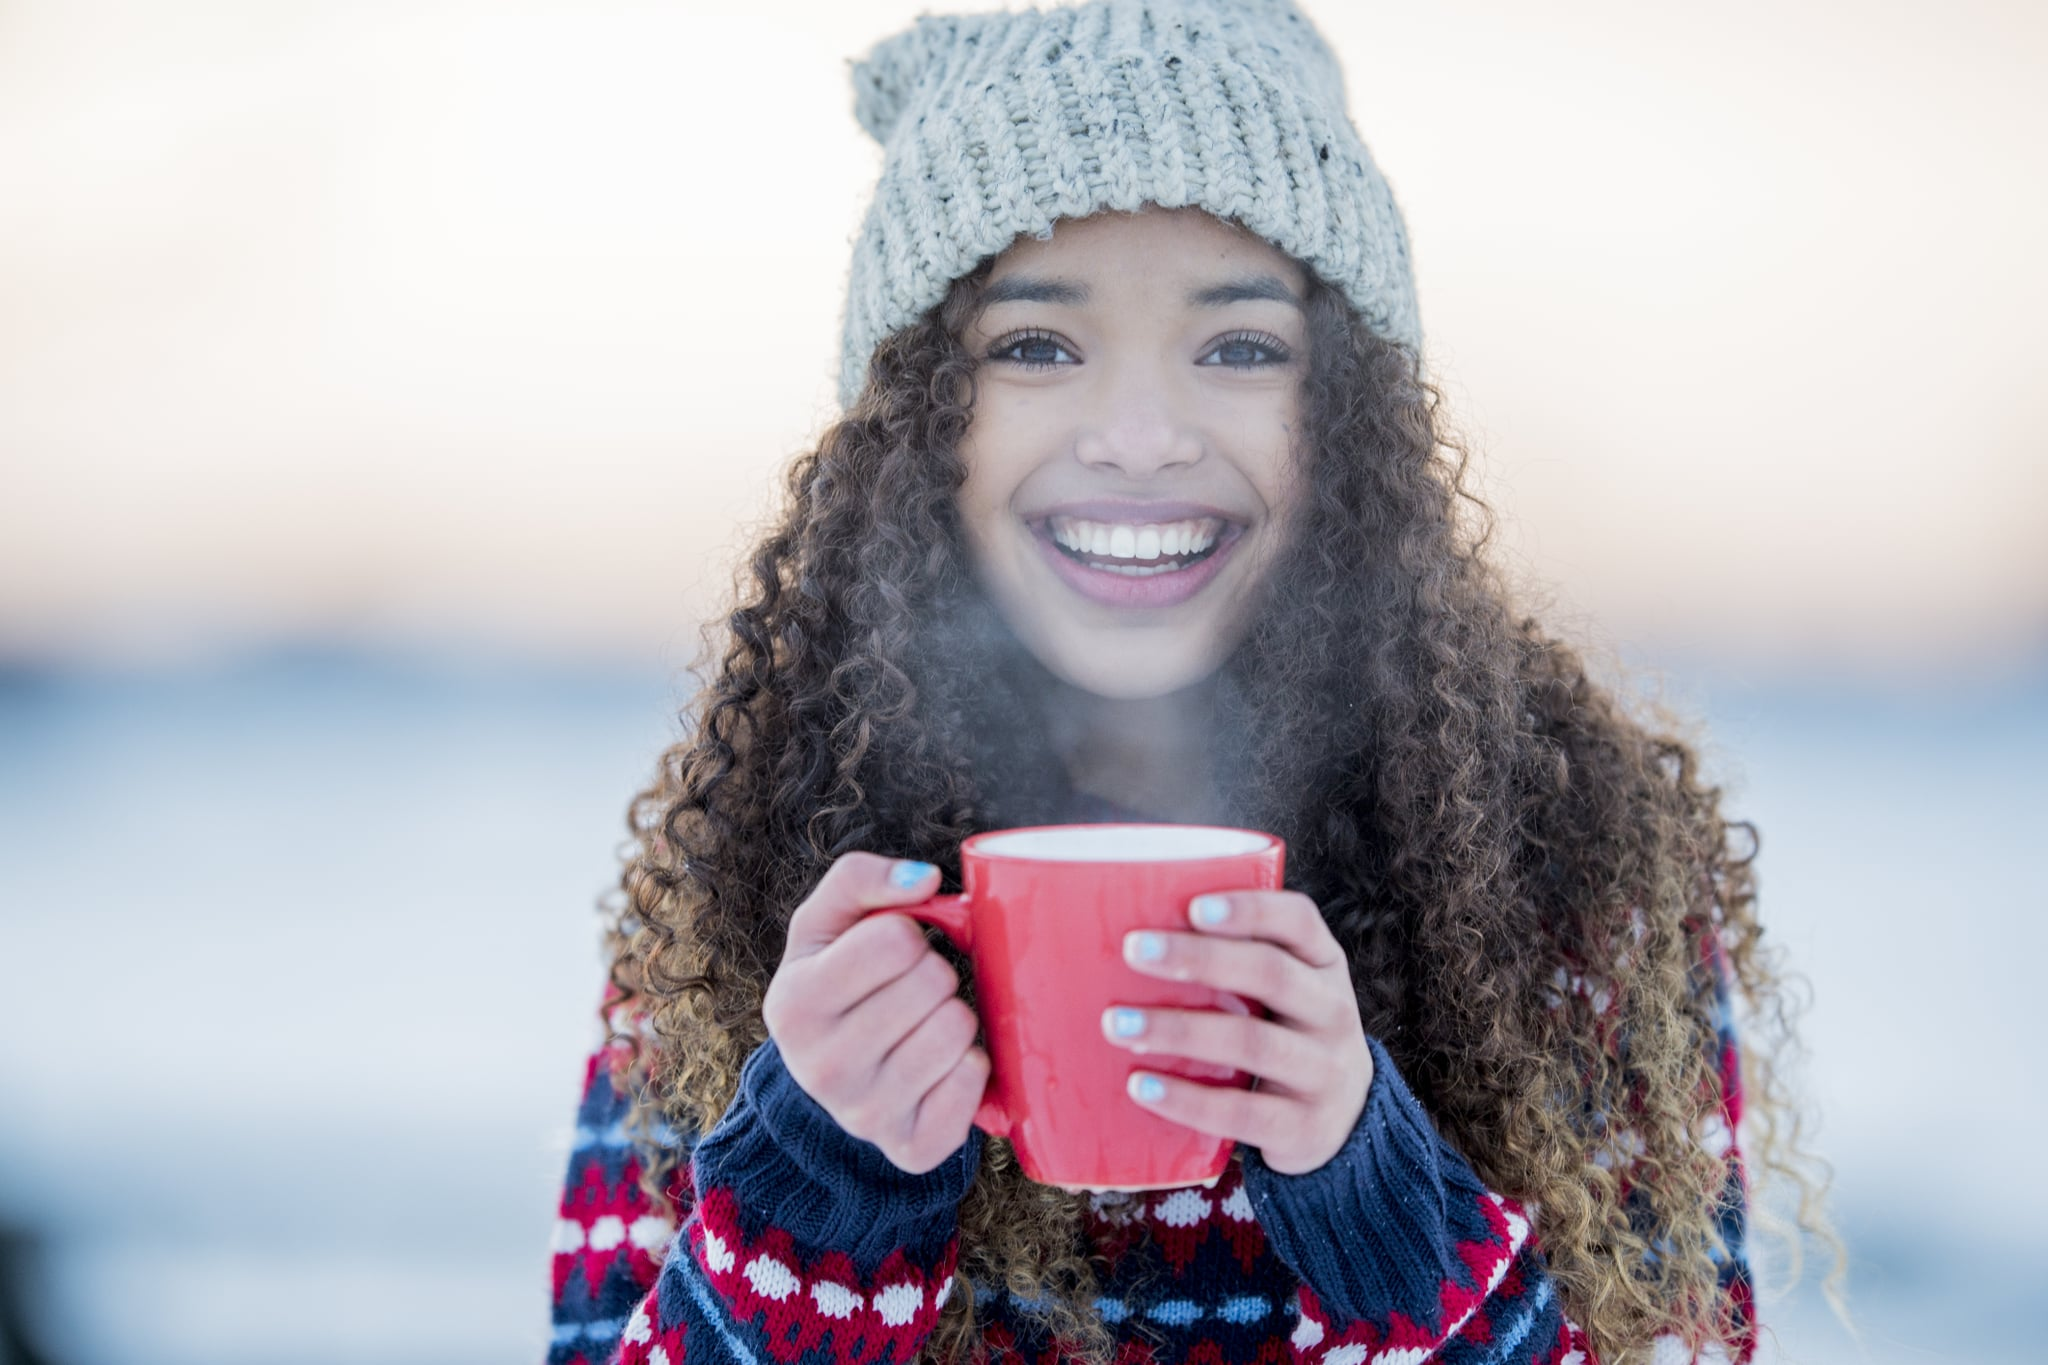 A young mixed race girl enjoys a cold winter day outside. She is smiling and holding a hot mug.